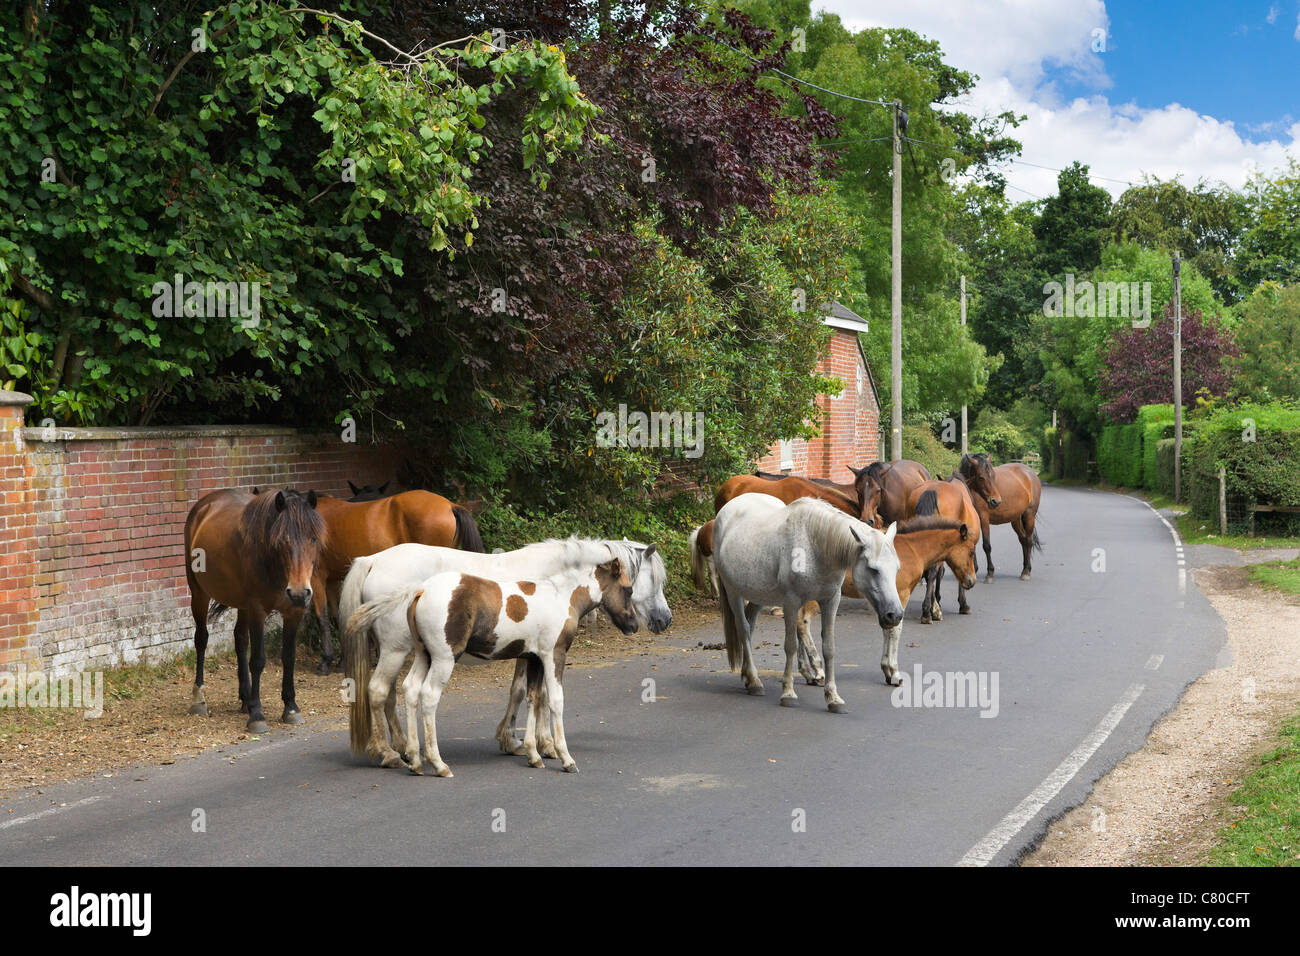 New Forest ponies blocking the road in the village of Burley, New Forest, Hampshire, England, UK - Stock Image